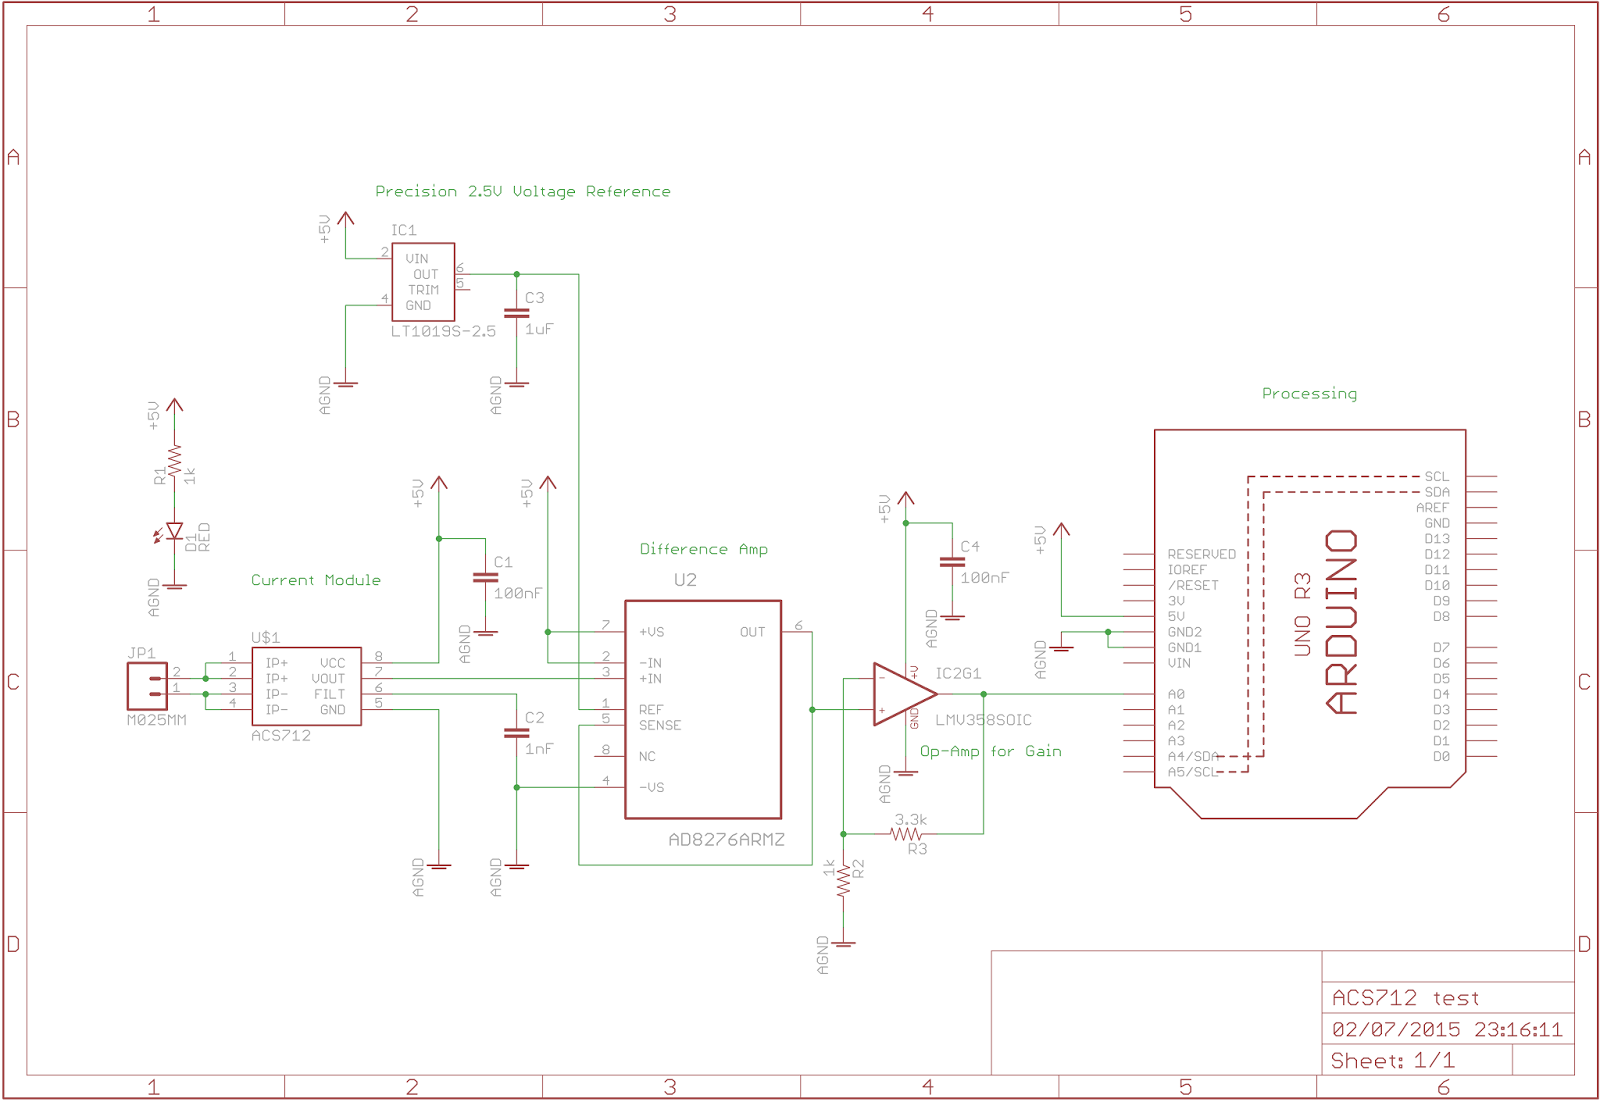 stihl ms 280 parts diagram 3 way dimmer switch wiring uk diagrams interactive briggs and stratton